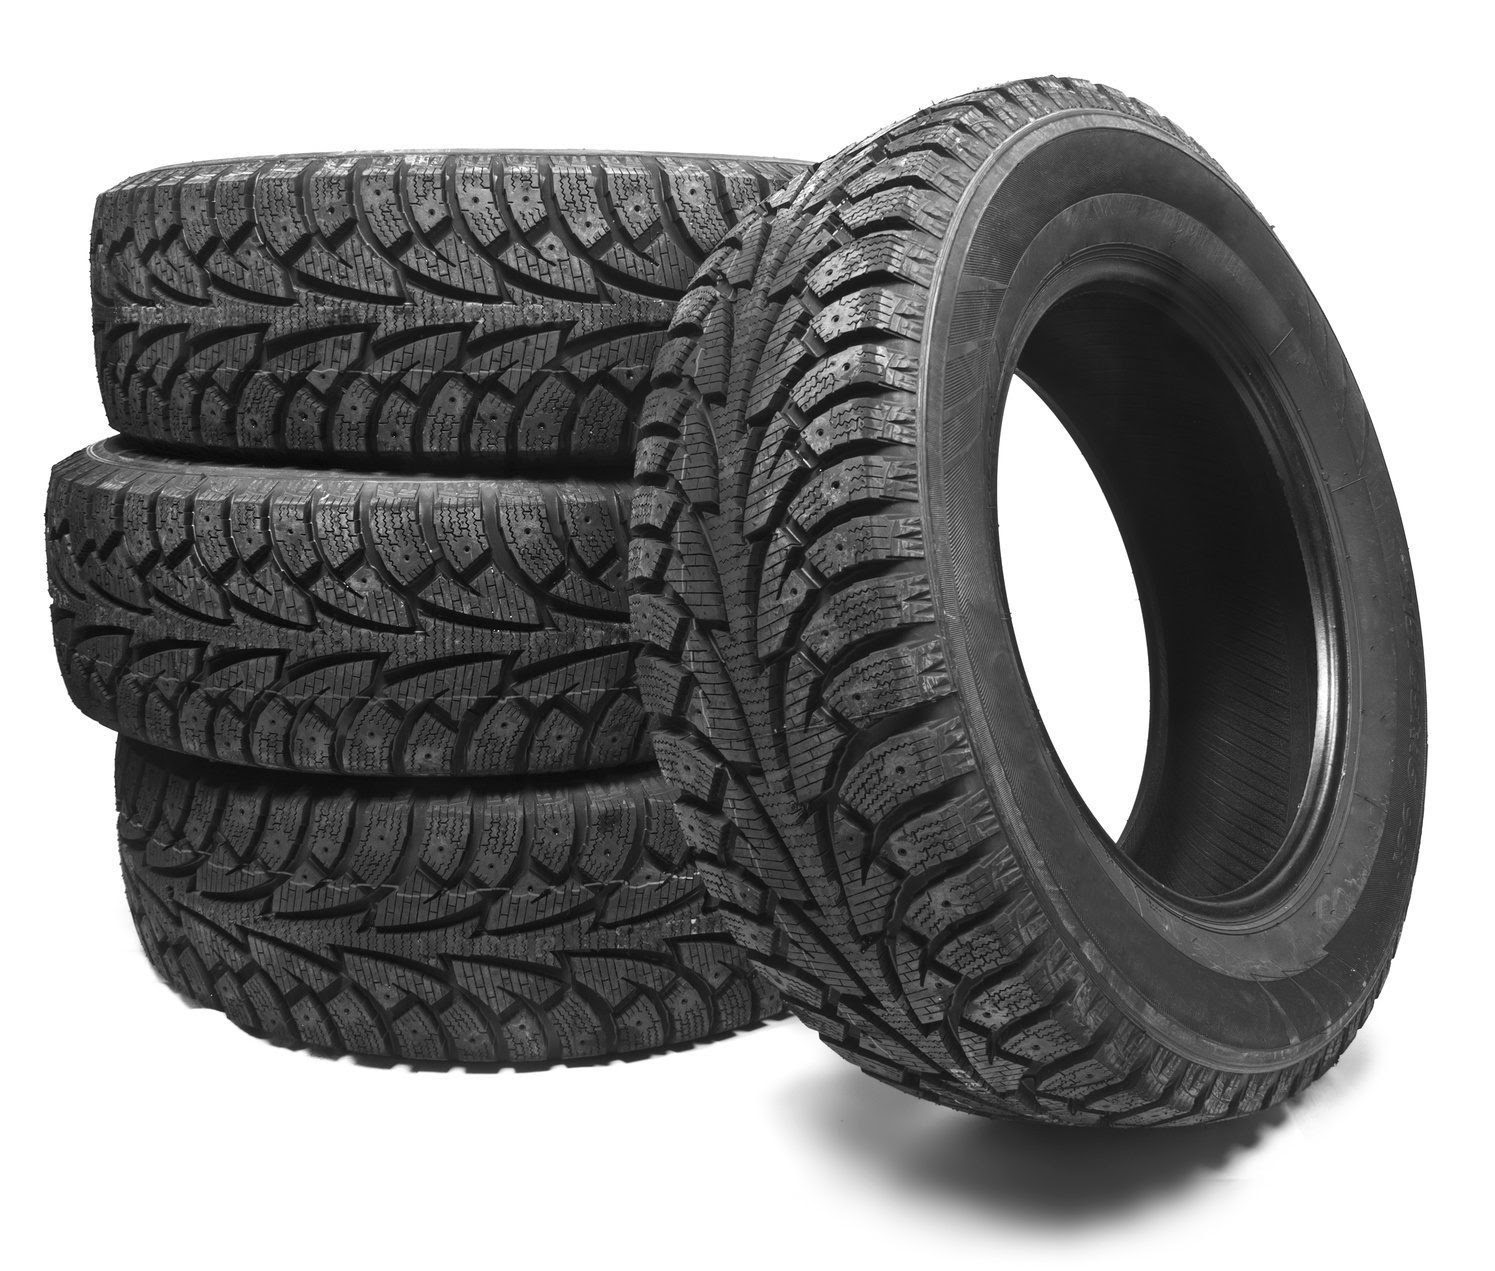 Continental Tire The Americas Recalls Contiprocontact Tires